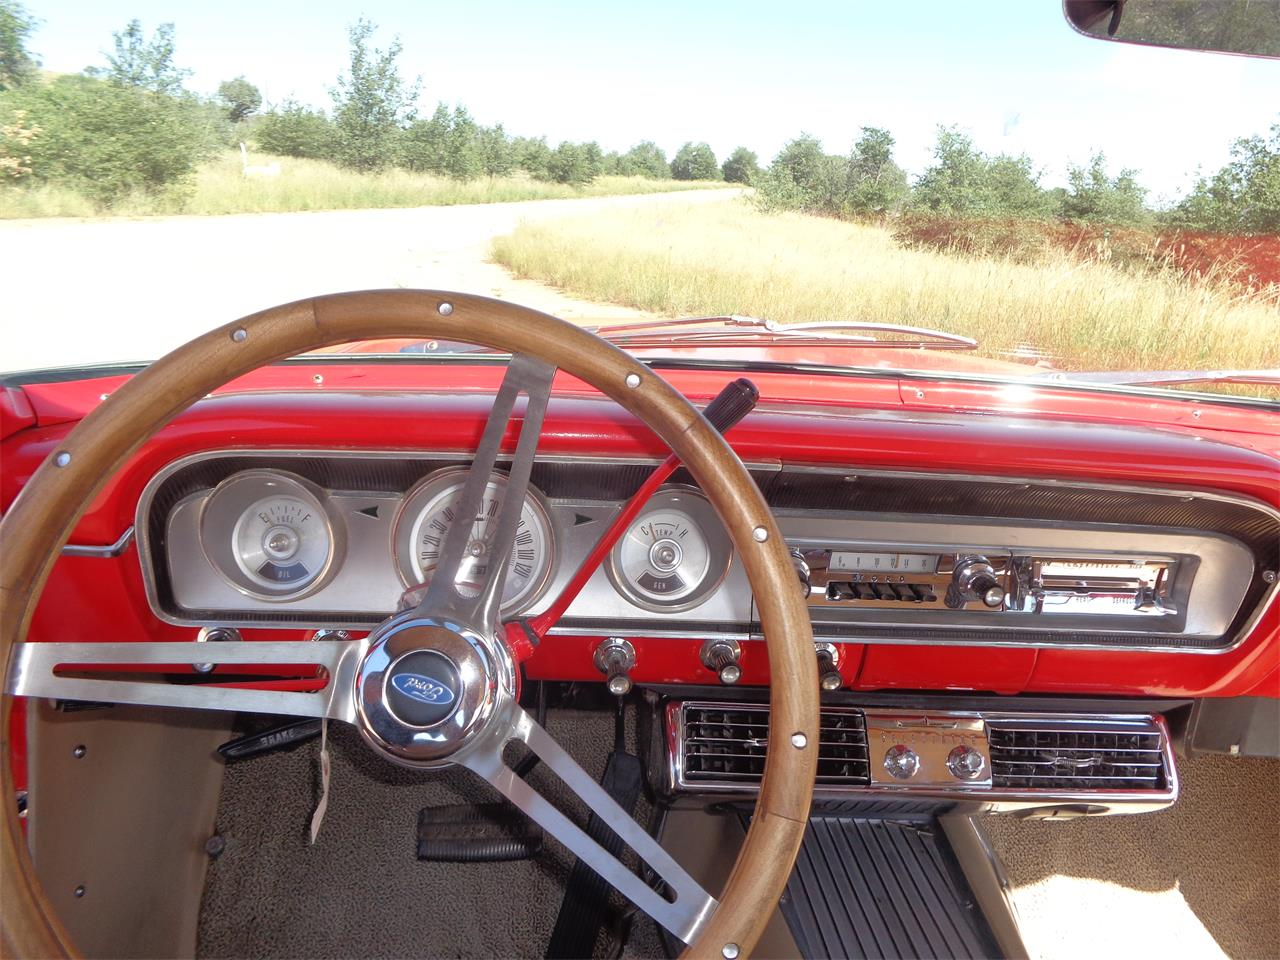 Large Picture of Classic '64 Fairlane 500 located in Hereford Arizona - $16,000.00 - OWO7